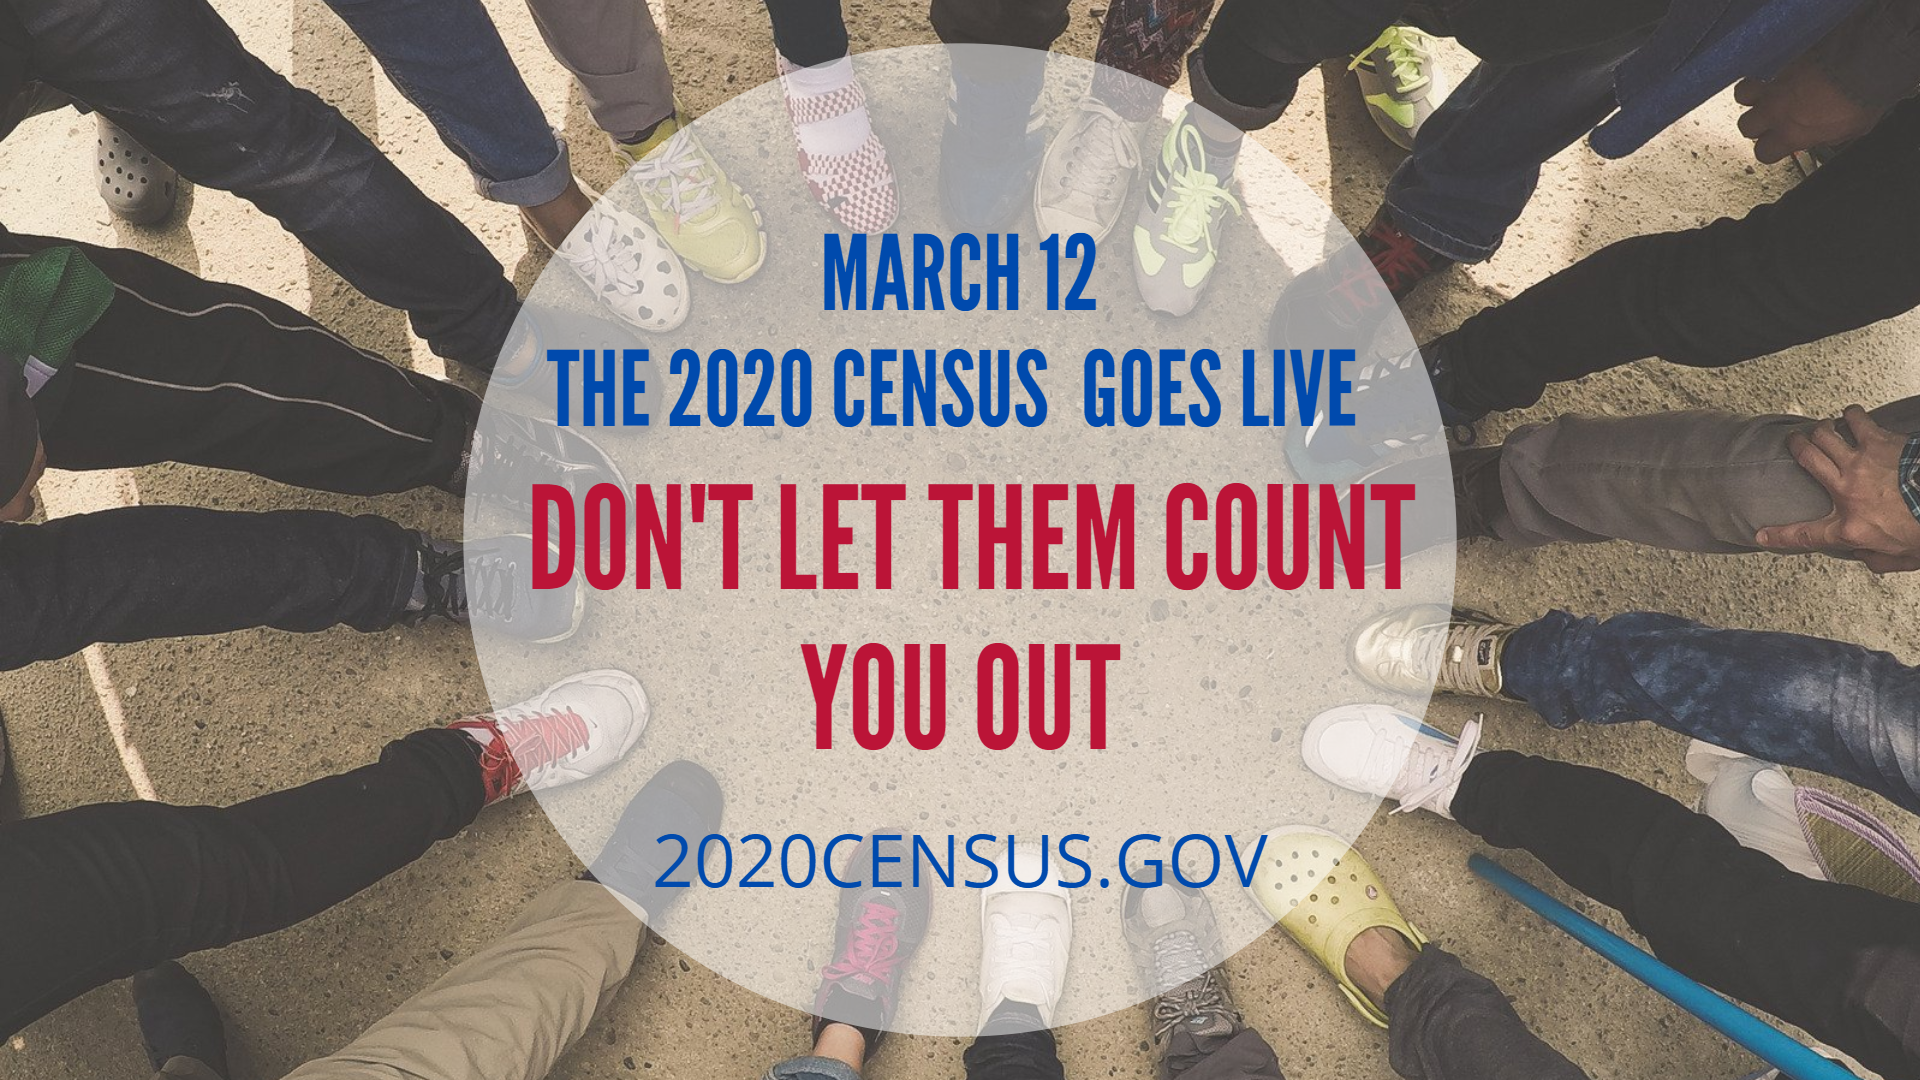 2020 Census Goes Live March 12  Image